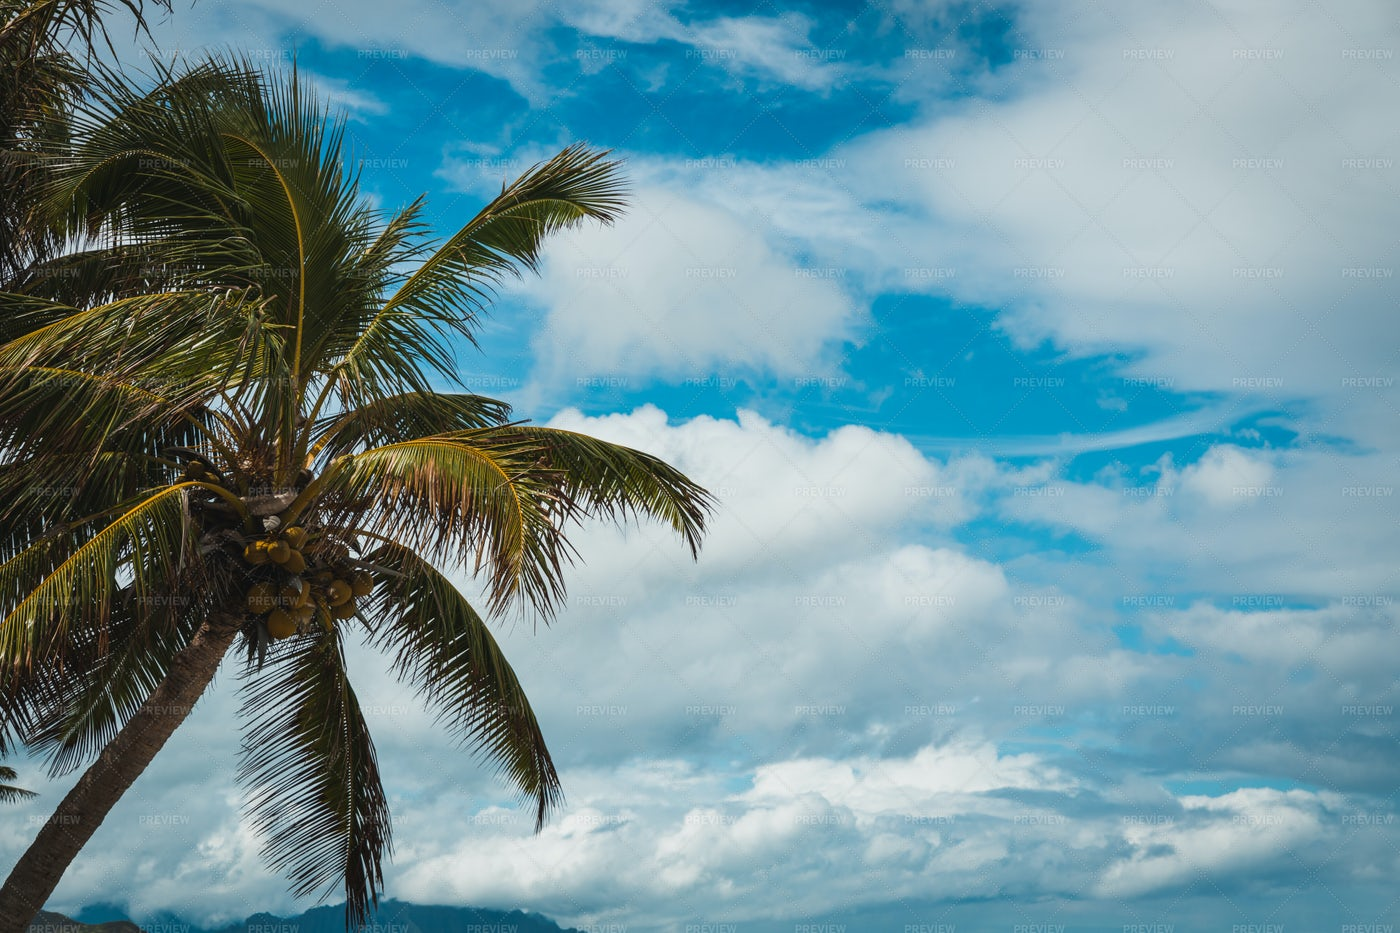 Palm Trees In Paradise: Stock Photos